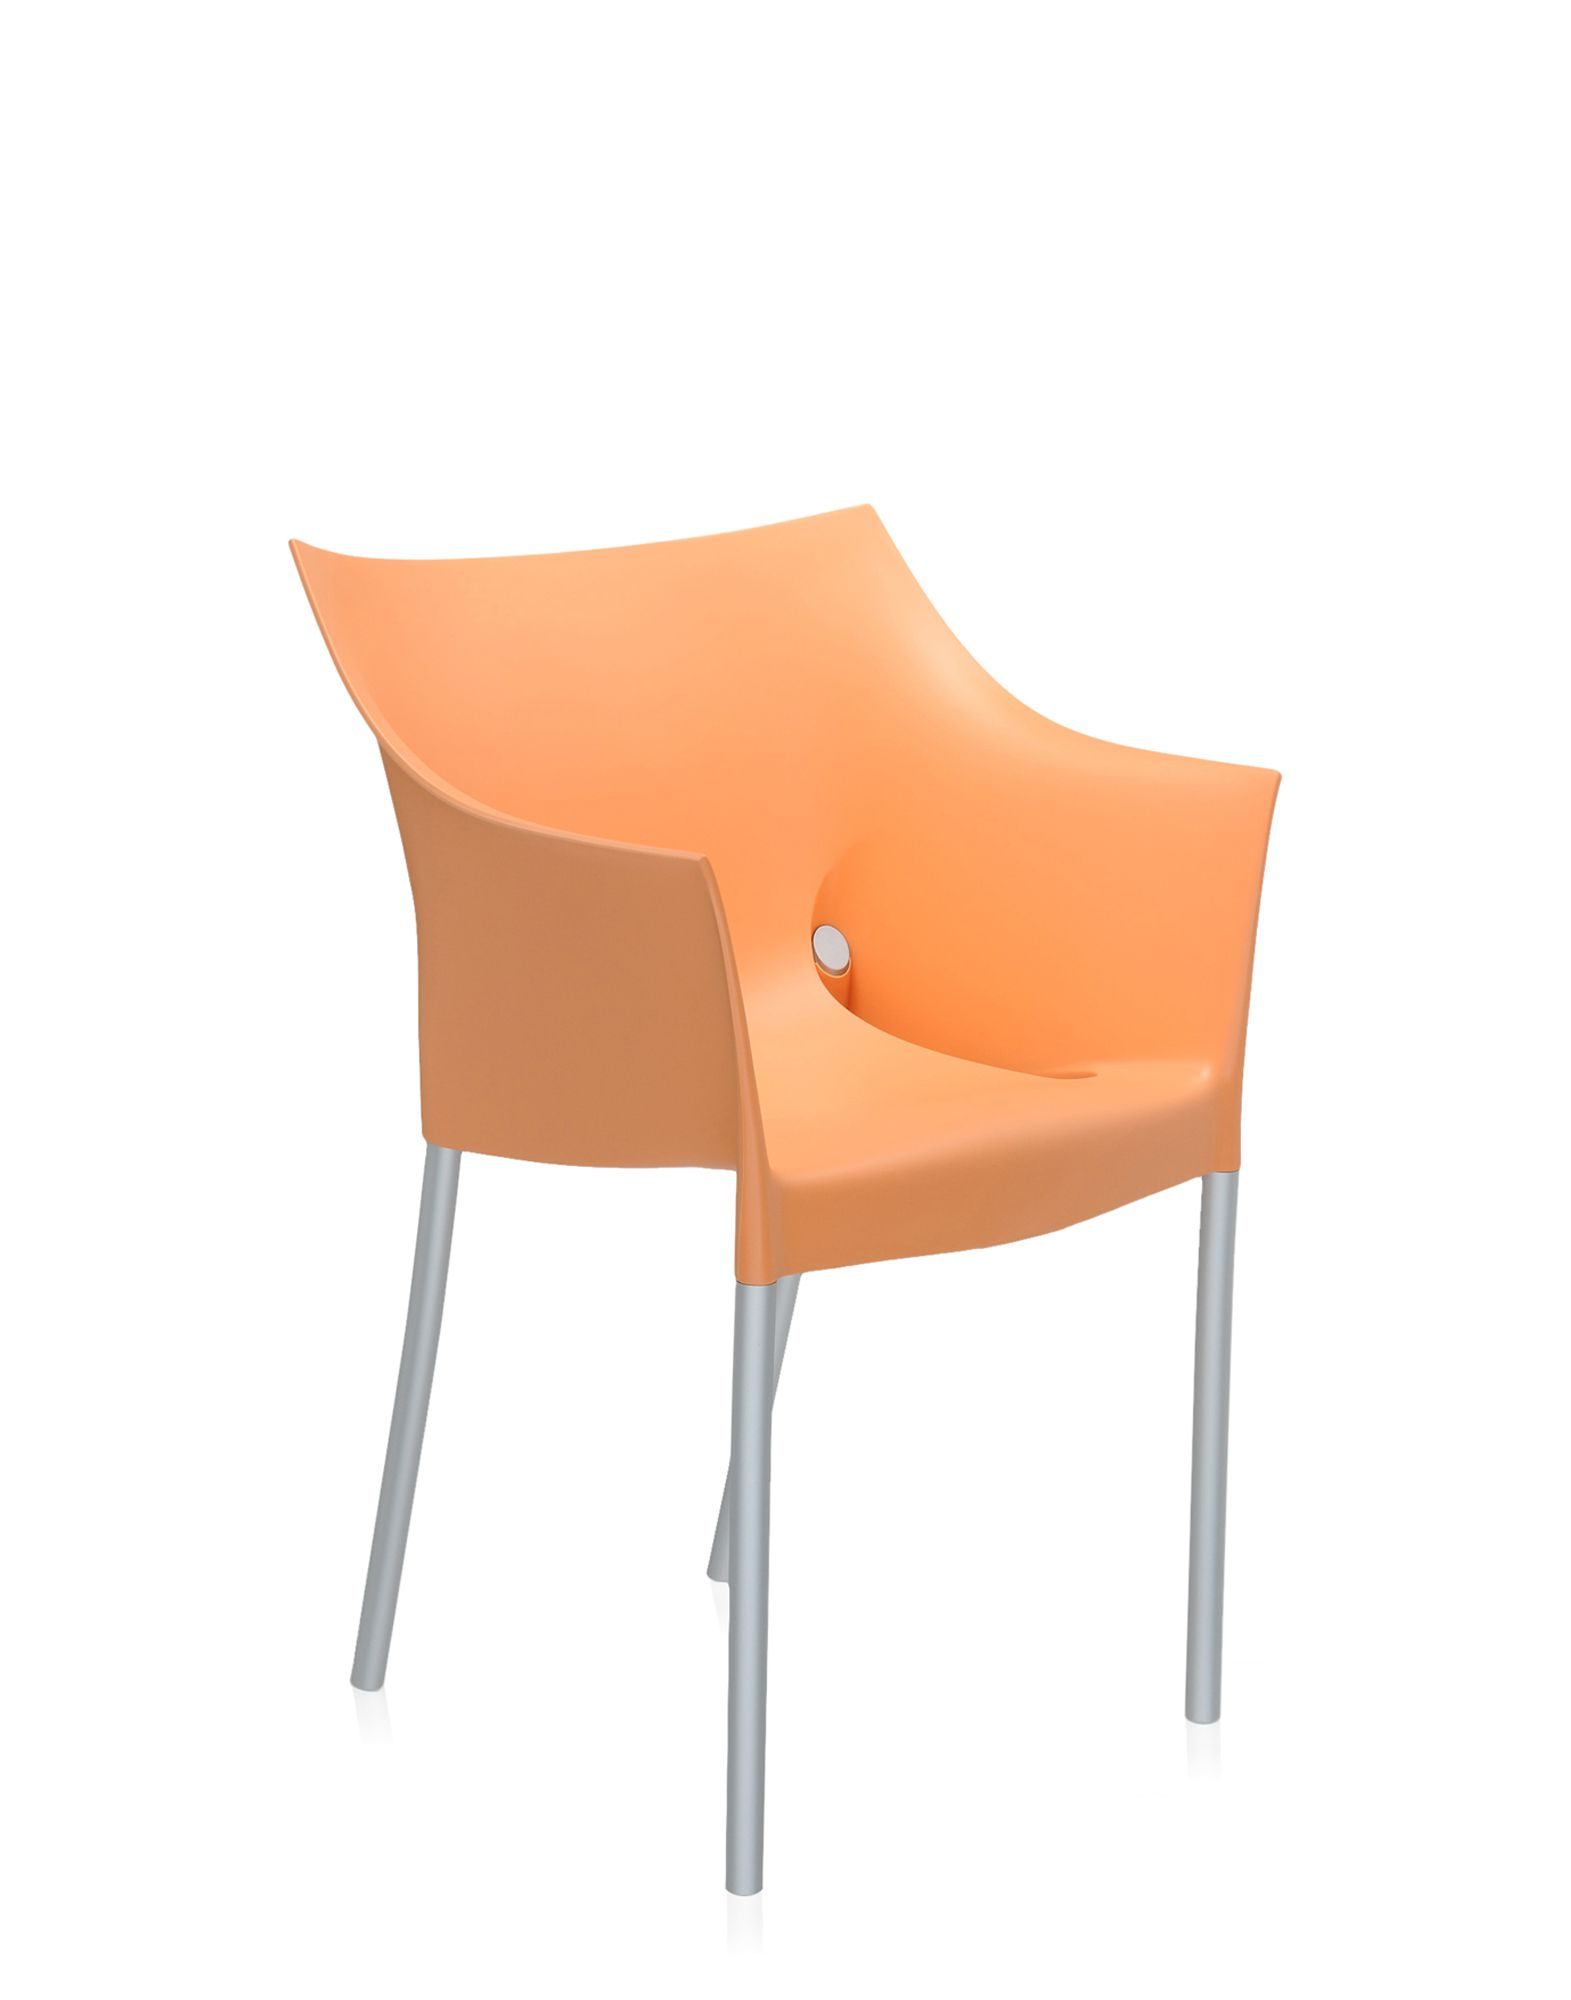 Dr no stuhl von kartell design phillipe starck prooffice for Starck stoelen